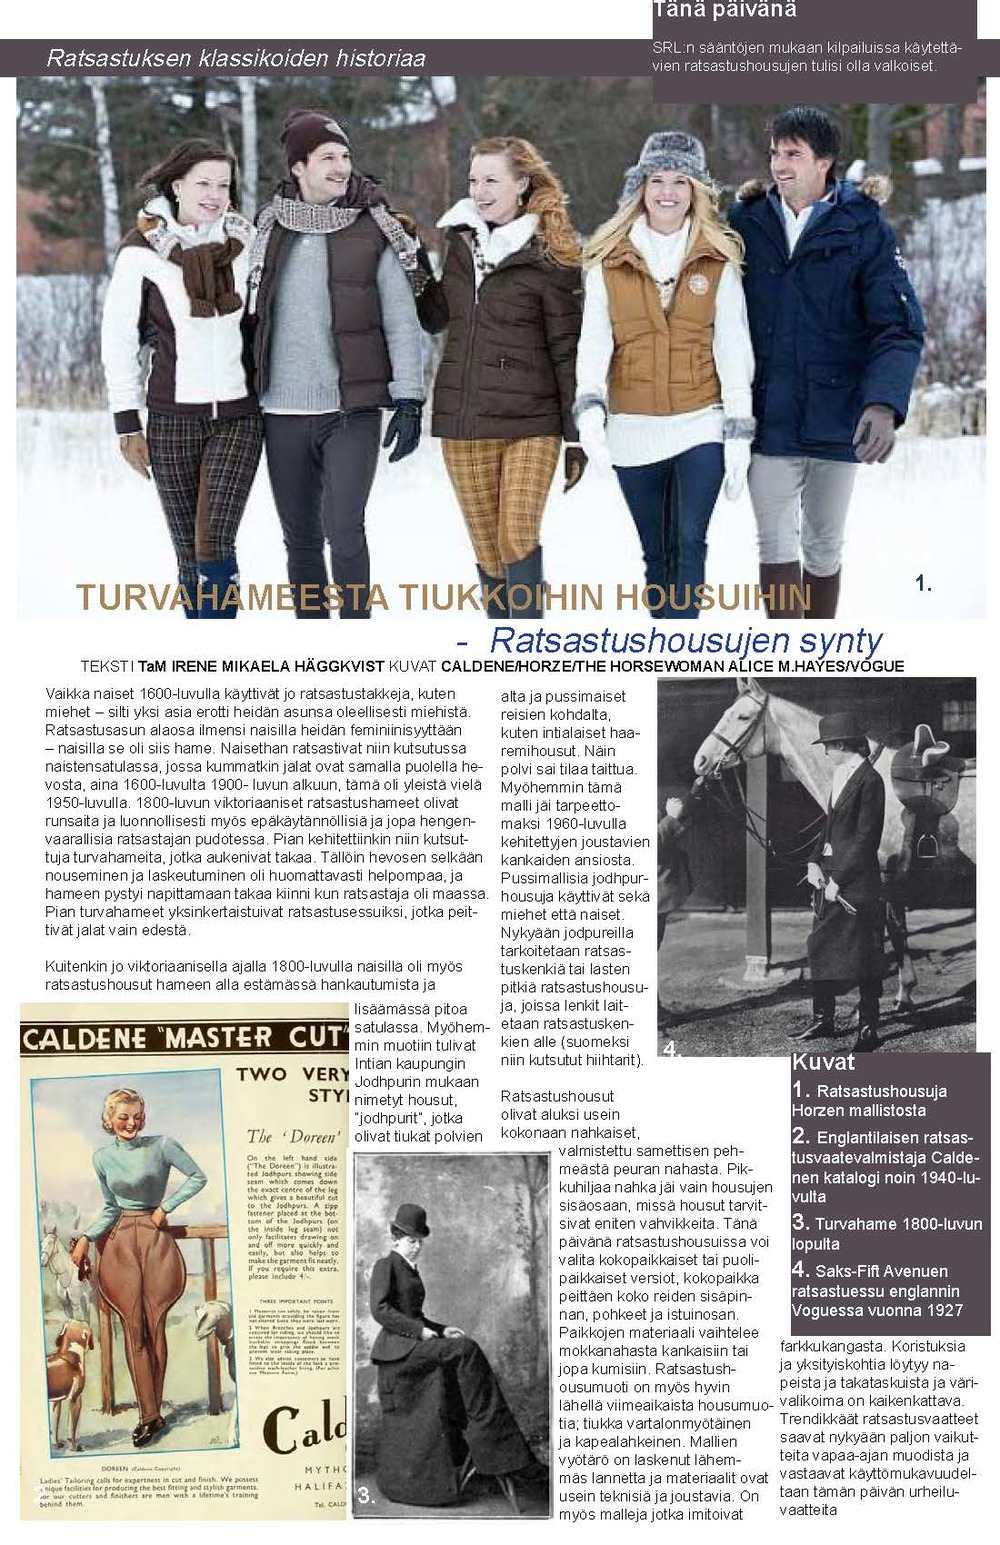 Irene Mikaela Häggkvist as a columnist for the Hippos magazine (The Equestrian Federation of Finland) about the history of riding apparel. History of breeches, December 2012.